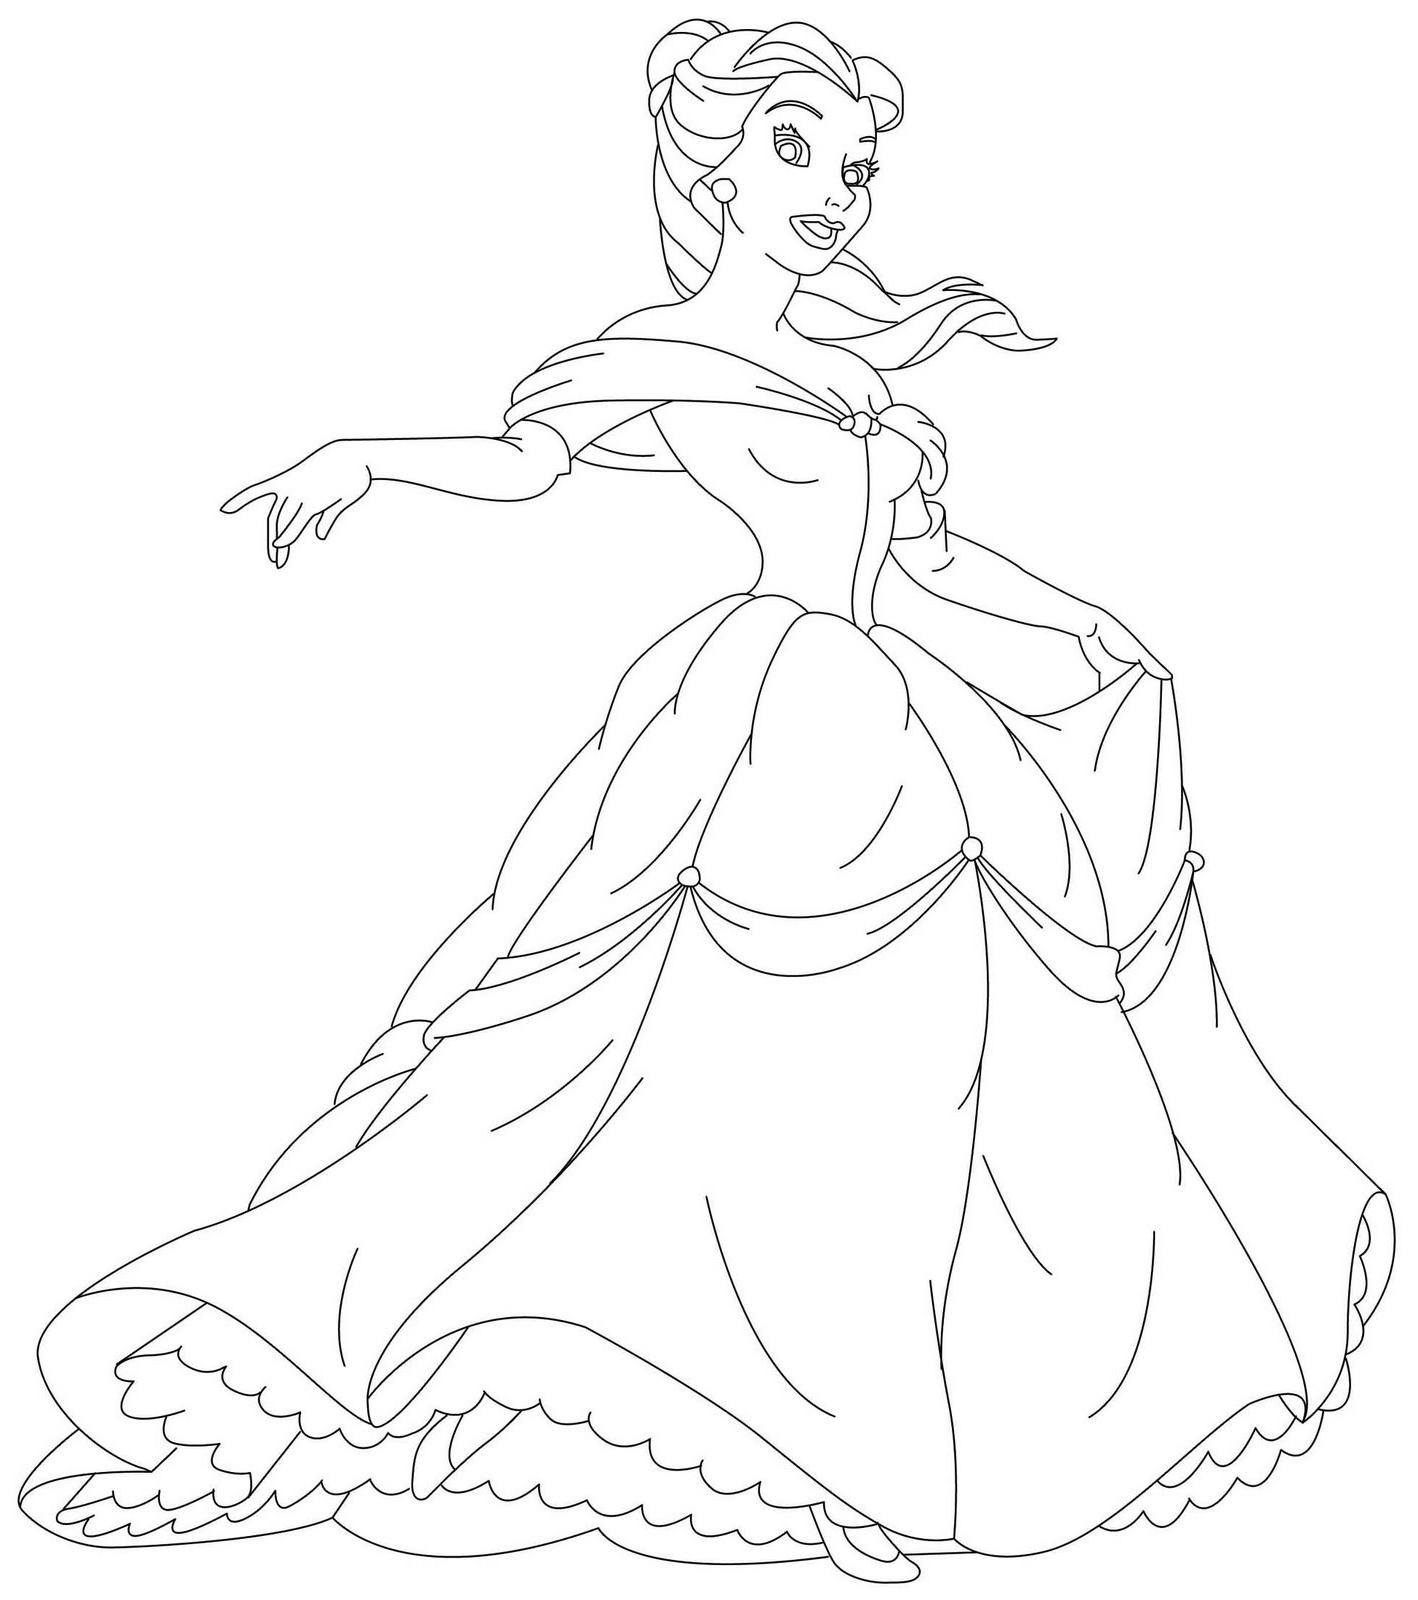 Disney Princesses Coloring Pages - Kidsuki | free online coloring pages disney princesses